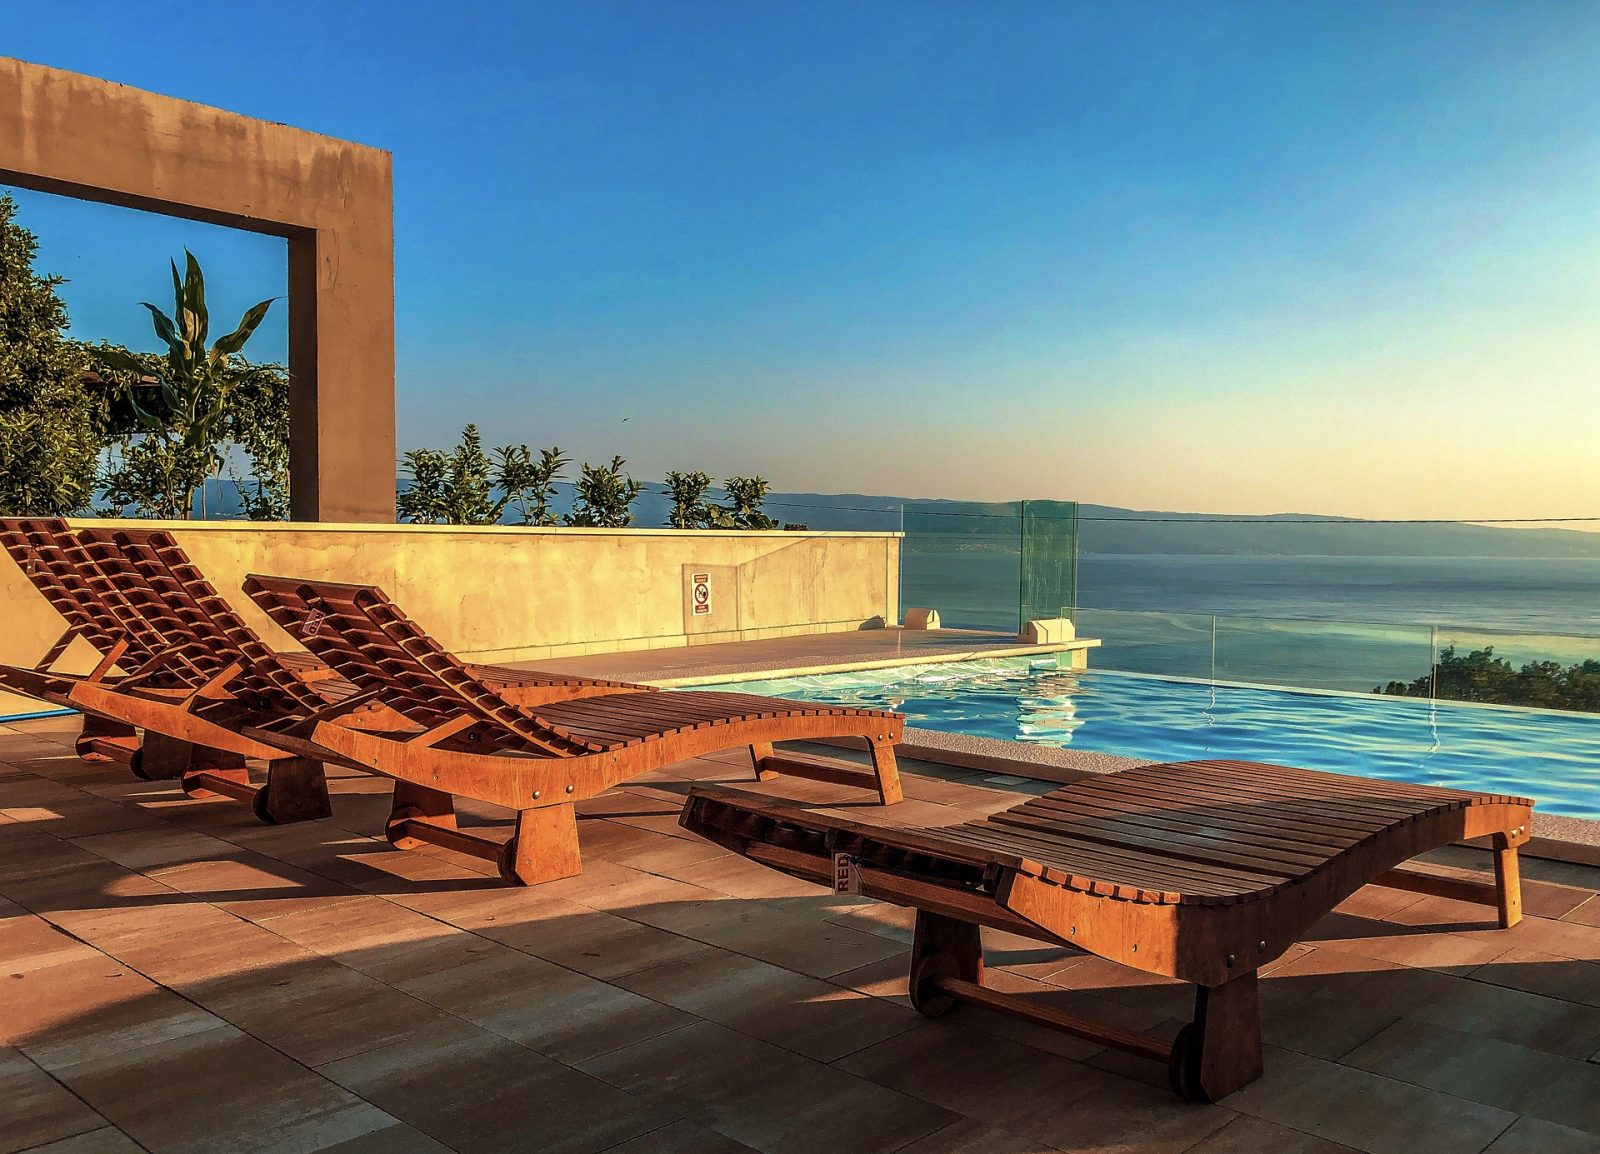 Sun loungers by an affinity pool looking out over an ocean.